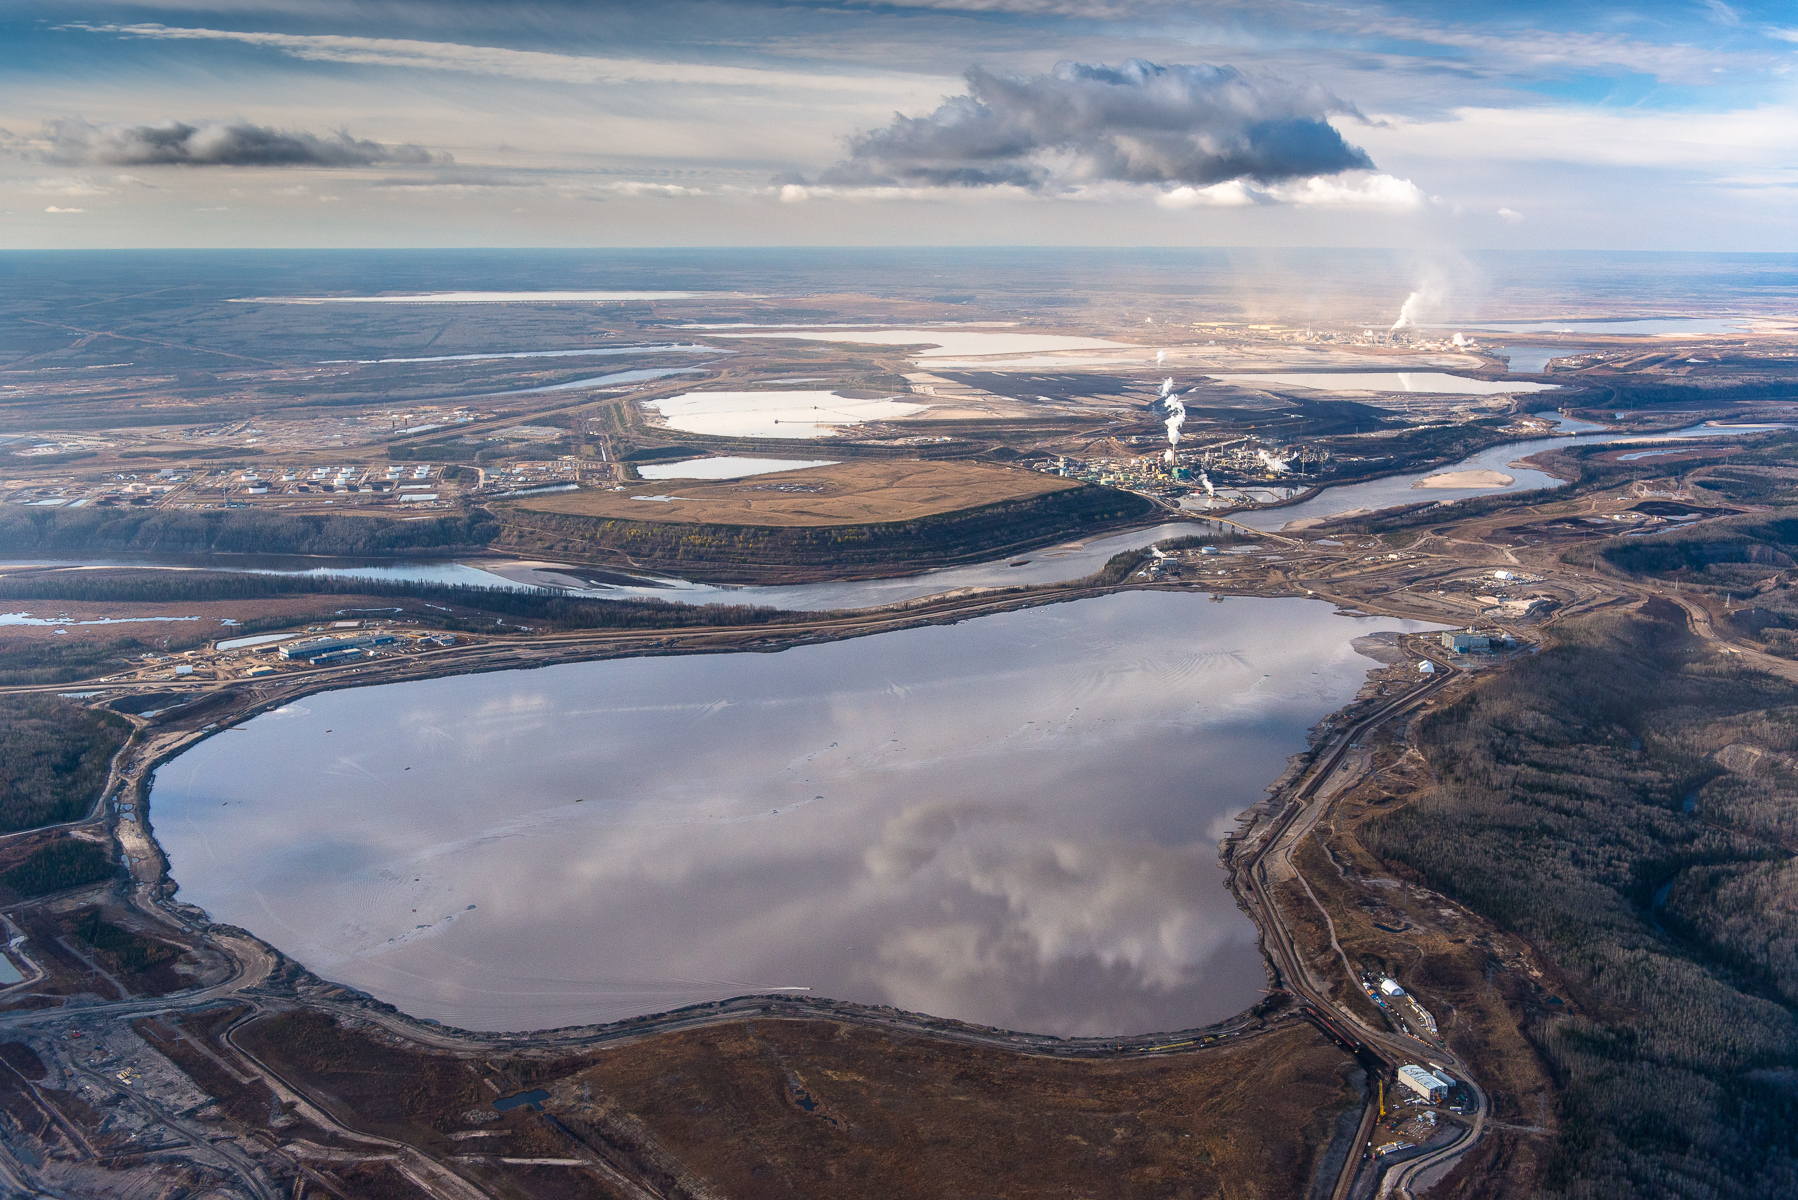 Suncor and Syncrude Upgraders, mines, tailings ponds, and Athabasca River. Alberta Oil/Tar Sands, Northern Alberta, Canada.